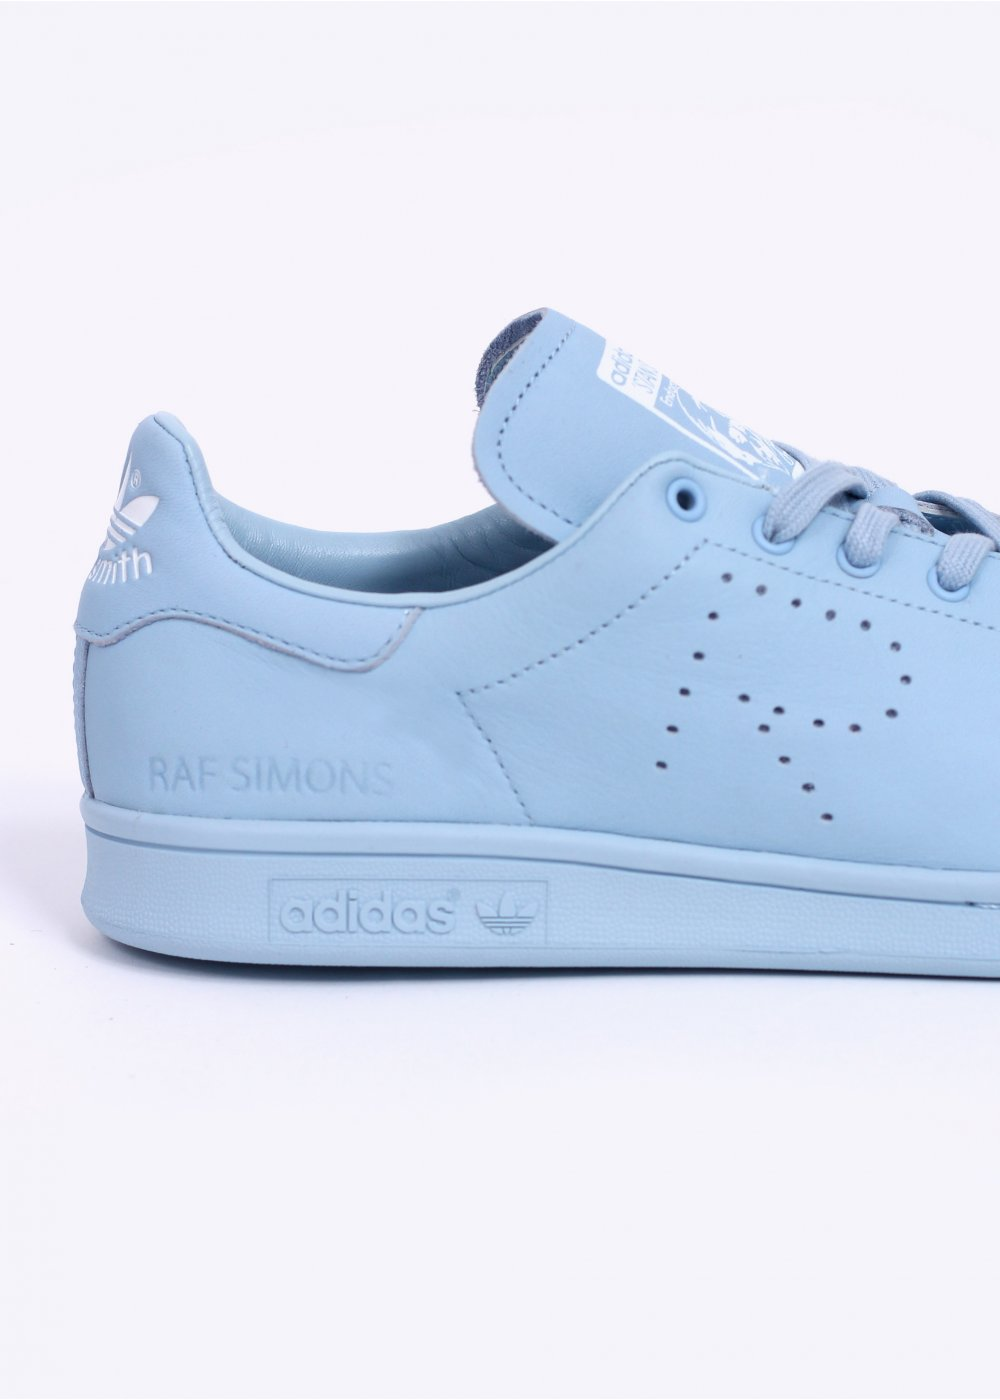 wnutk adidas Originals STAN SMITH TRAINERS - SKY / WHITE